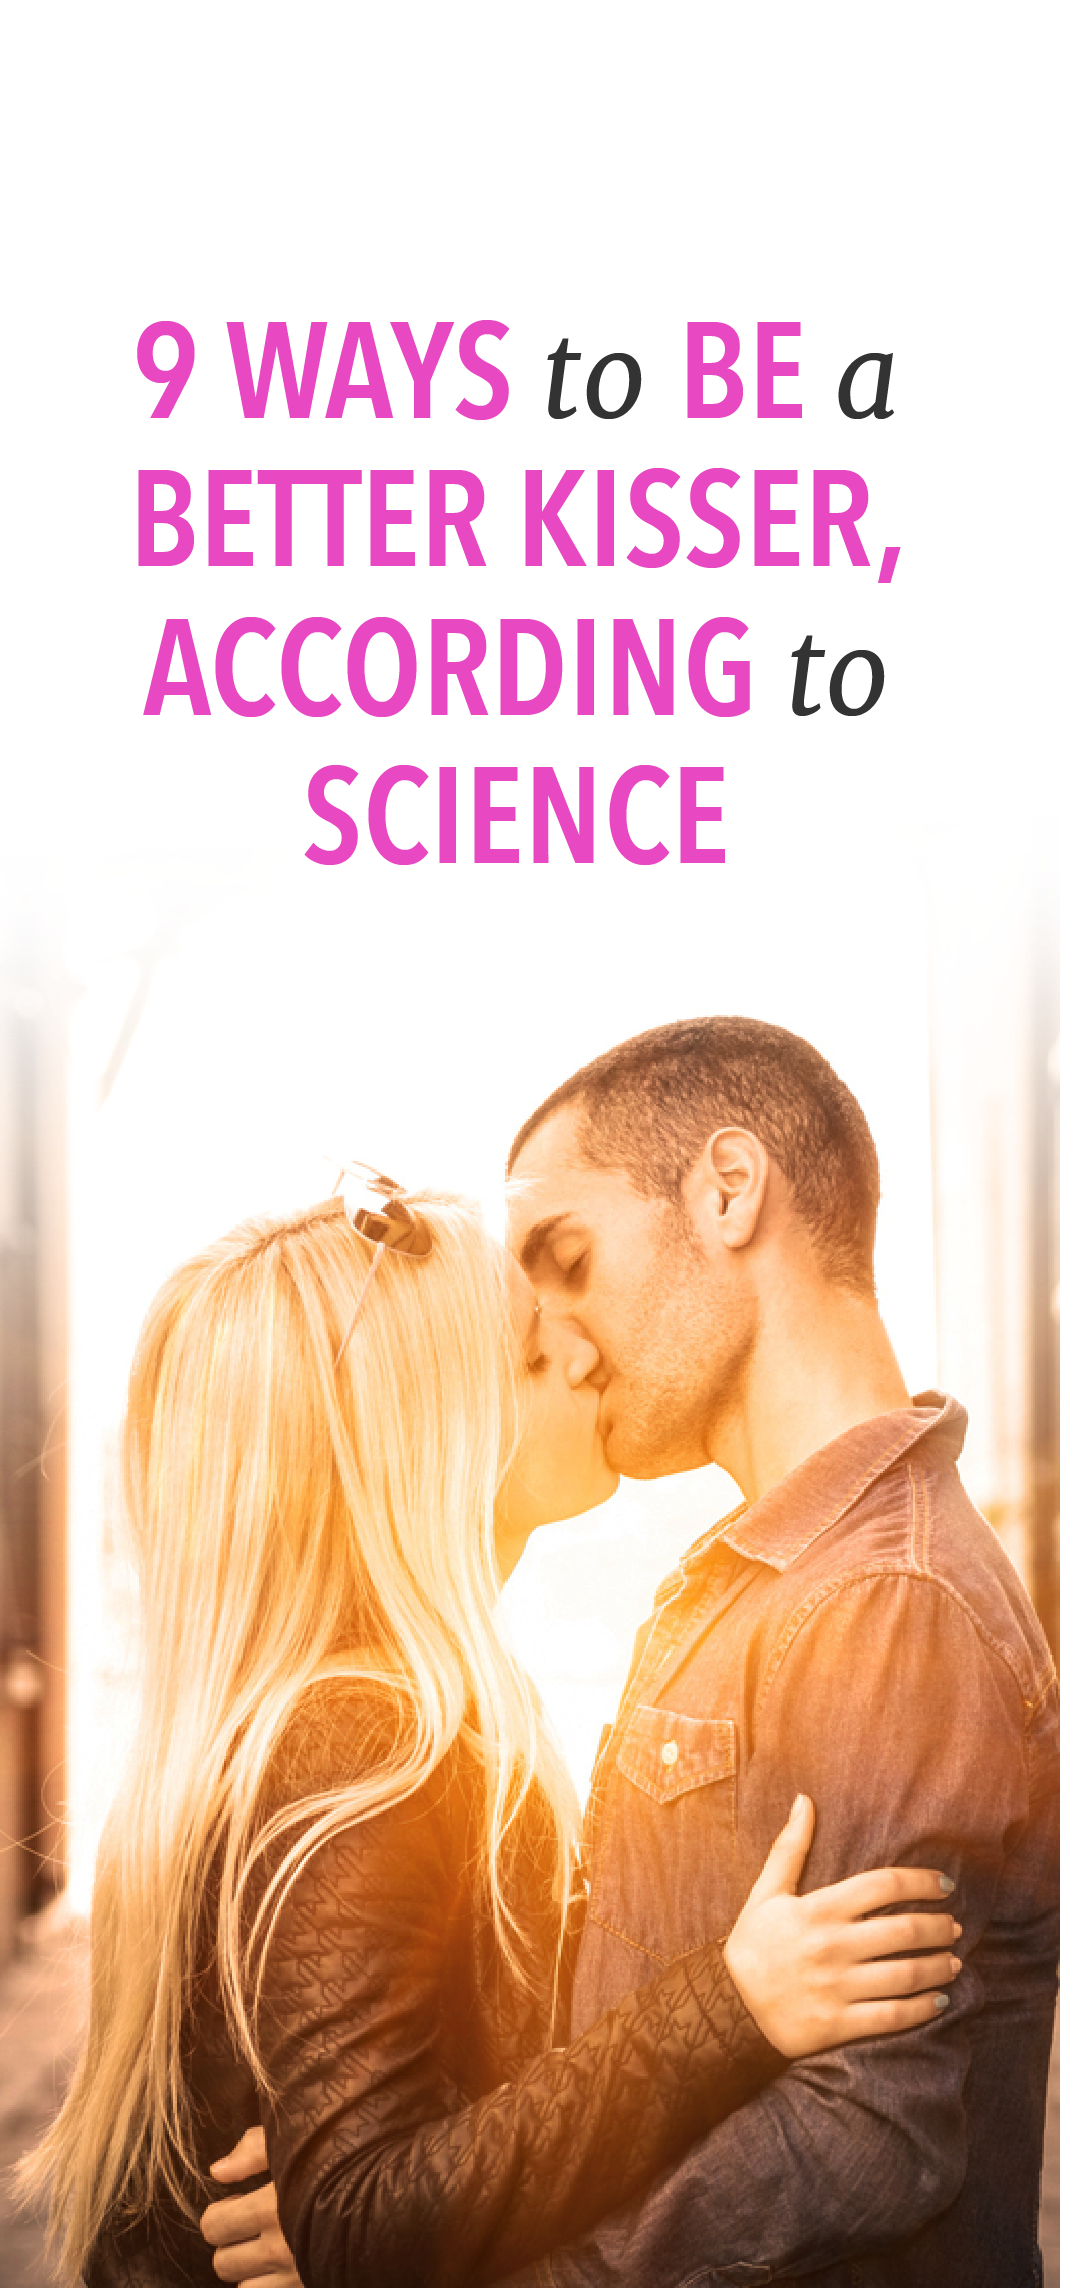 How be good kisser according science